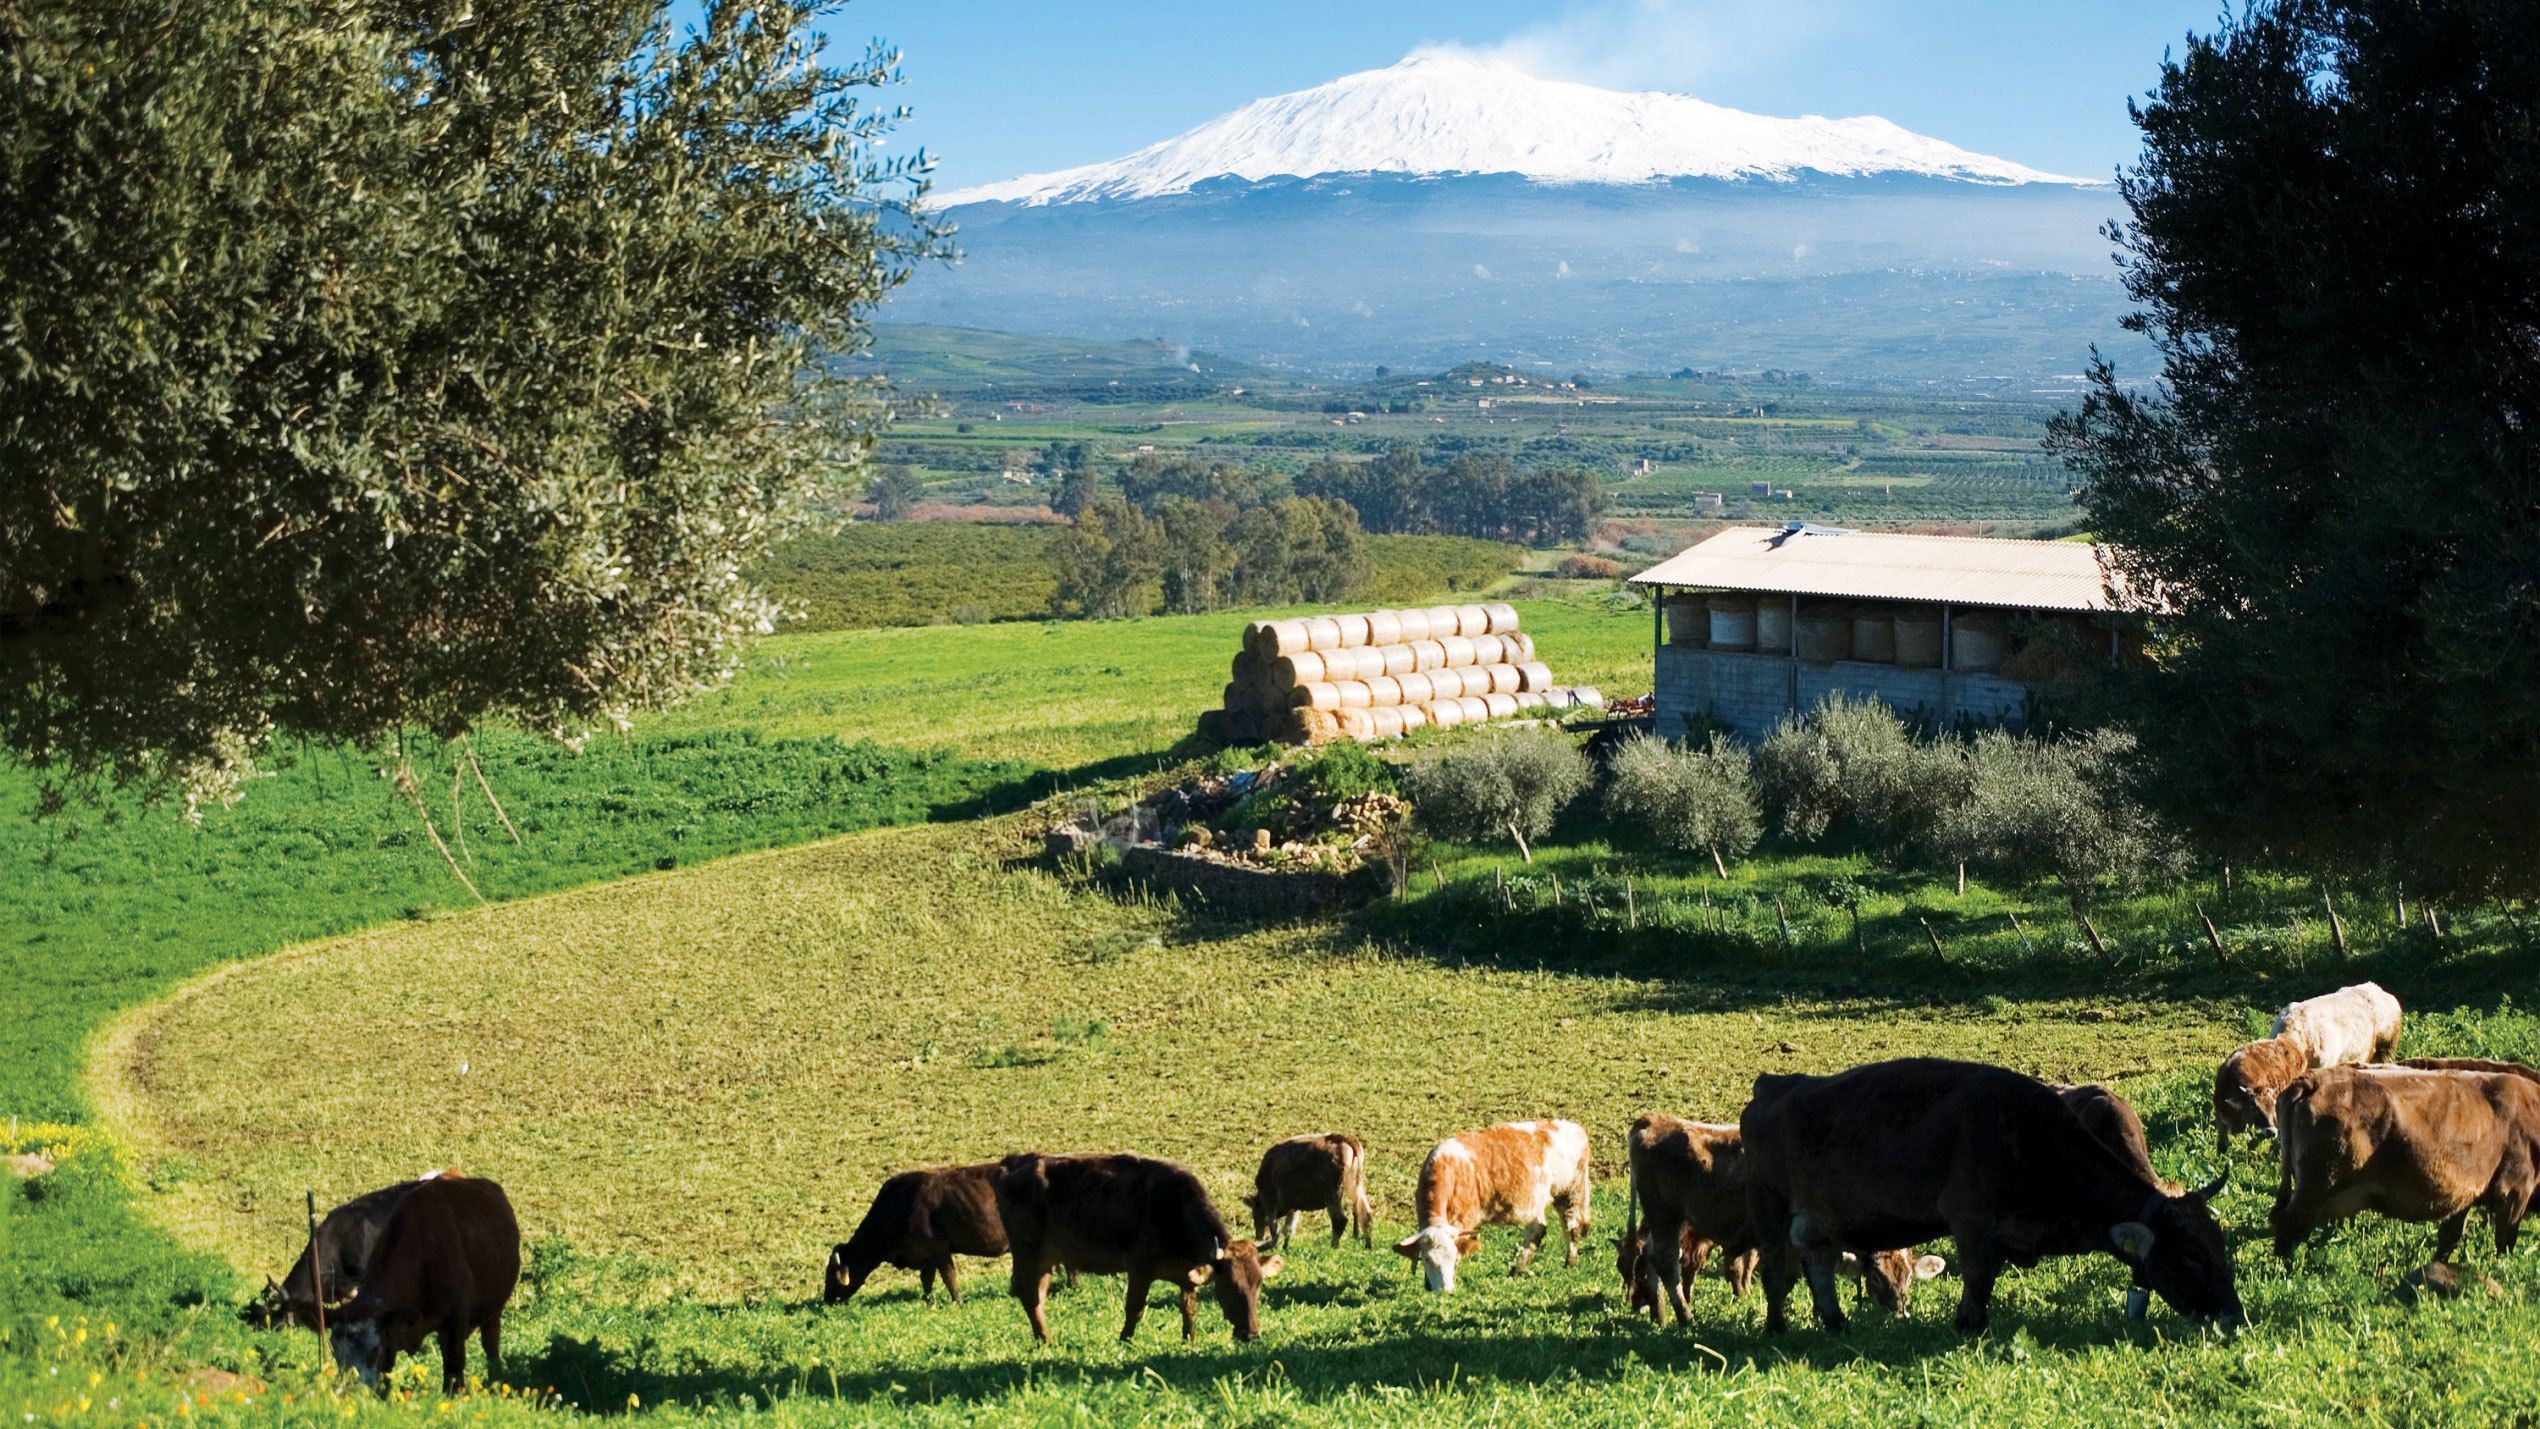 Herd of cattle on a farm with Mount Etna in the distance in Sicily